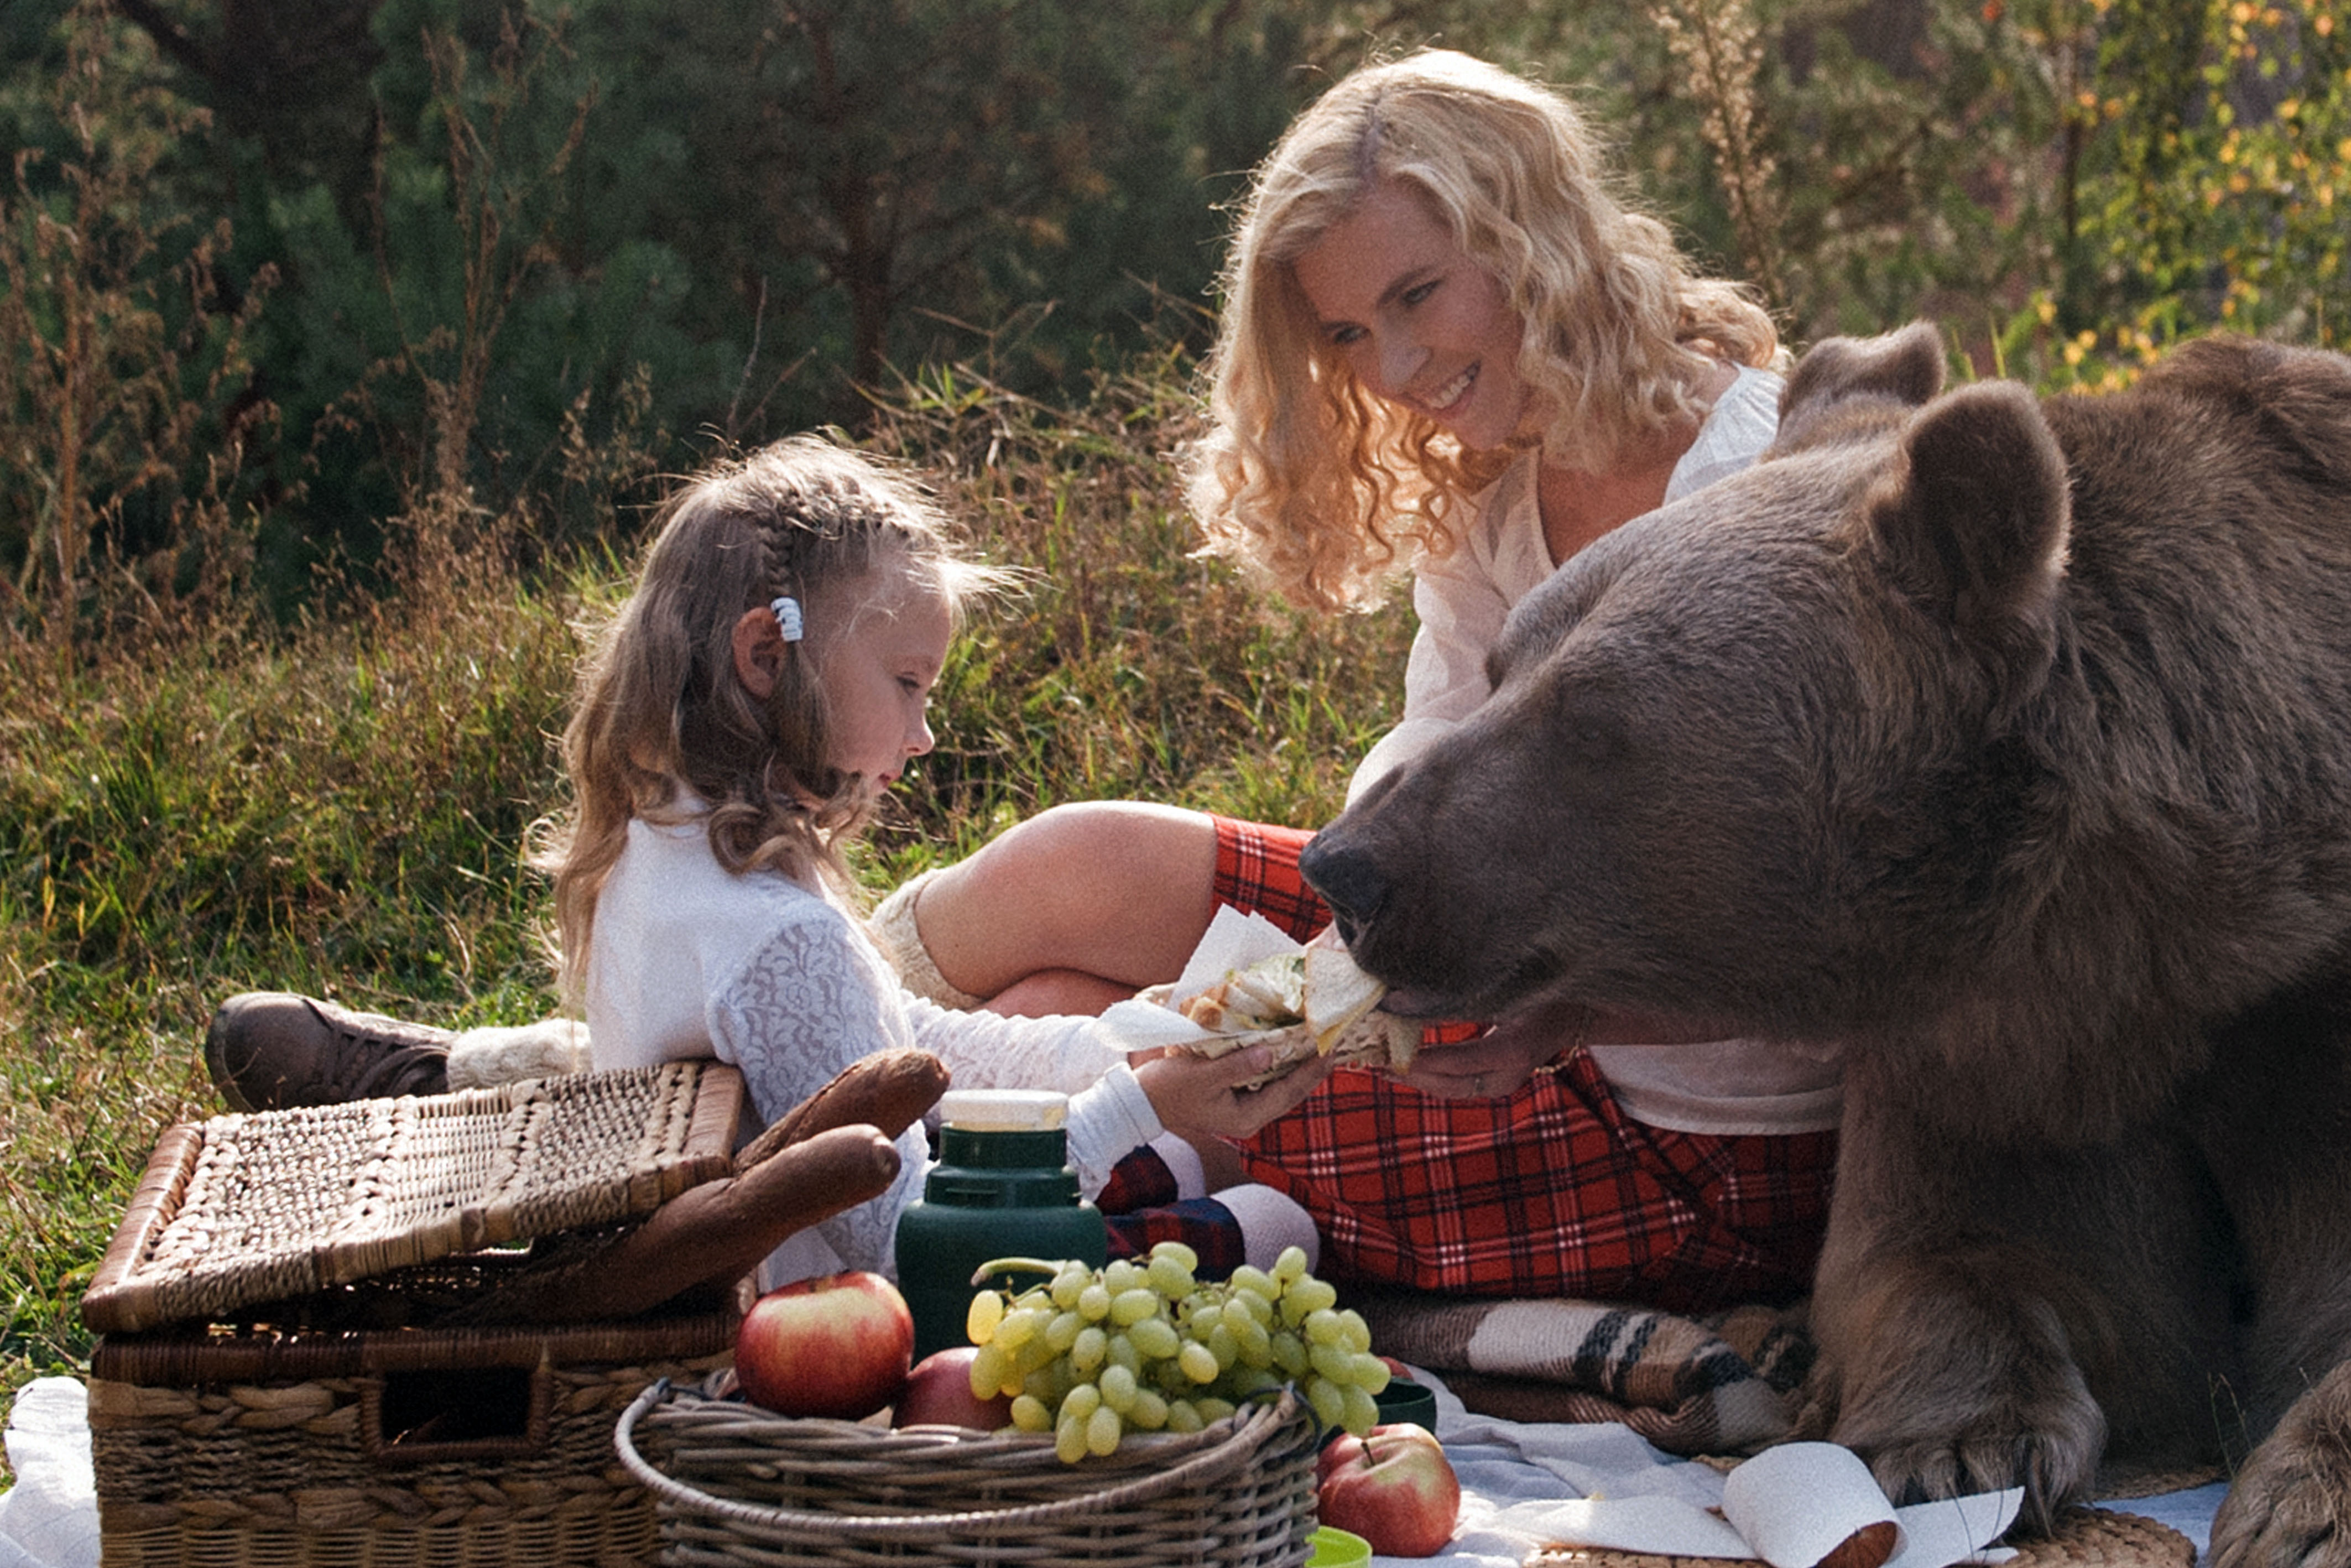 Nothing like sharing a picnic with a grizzly bear.